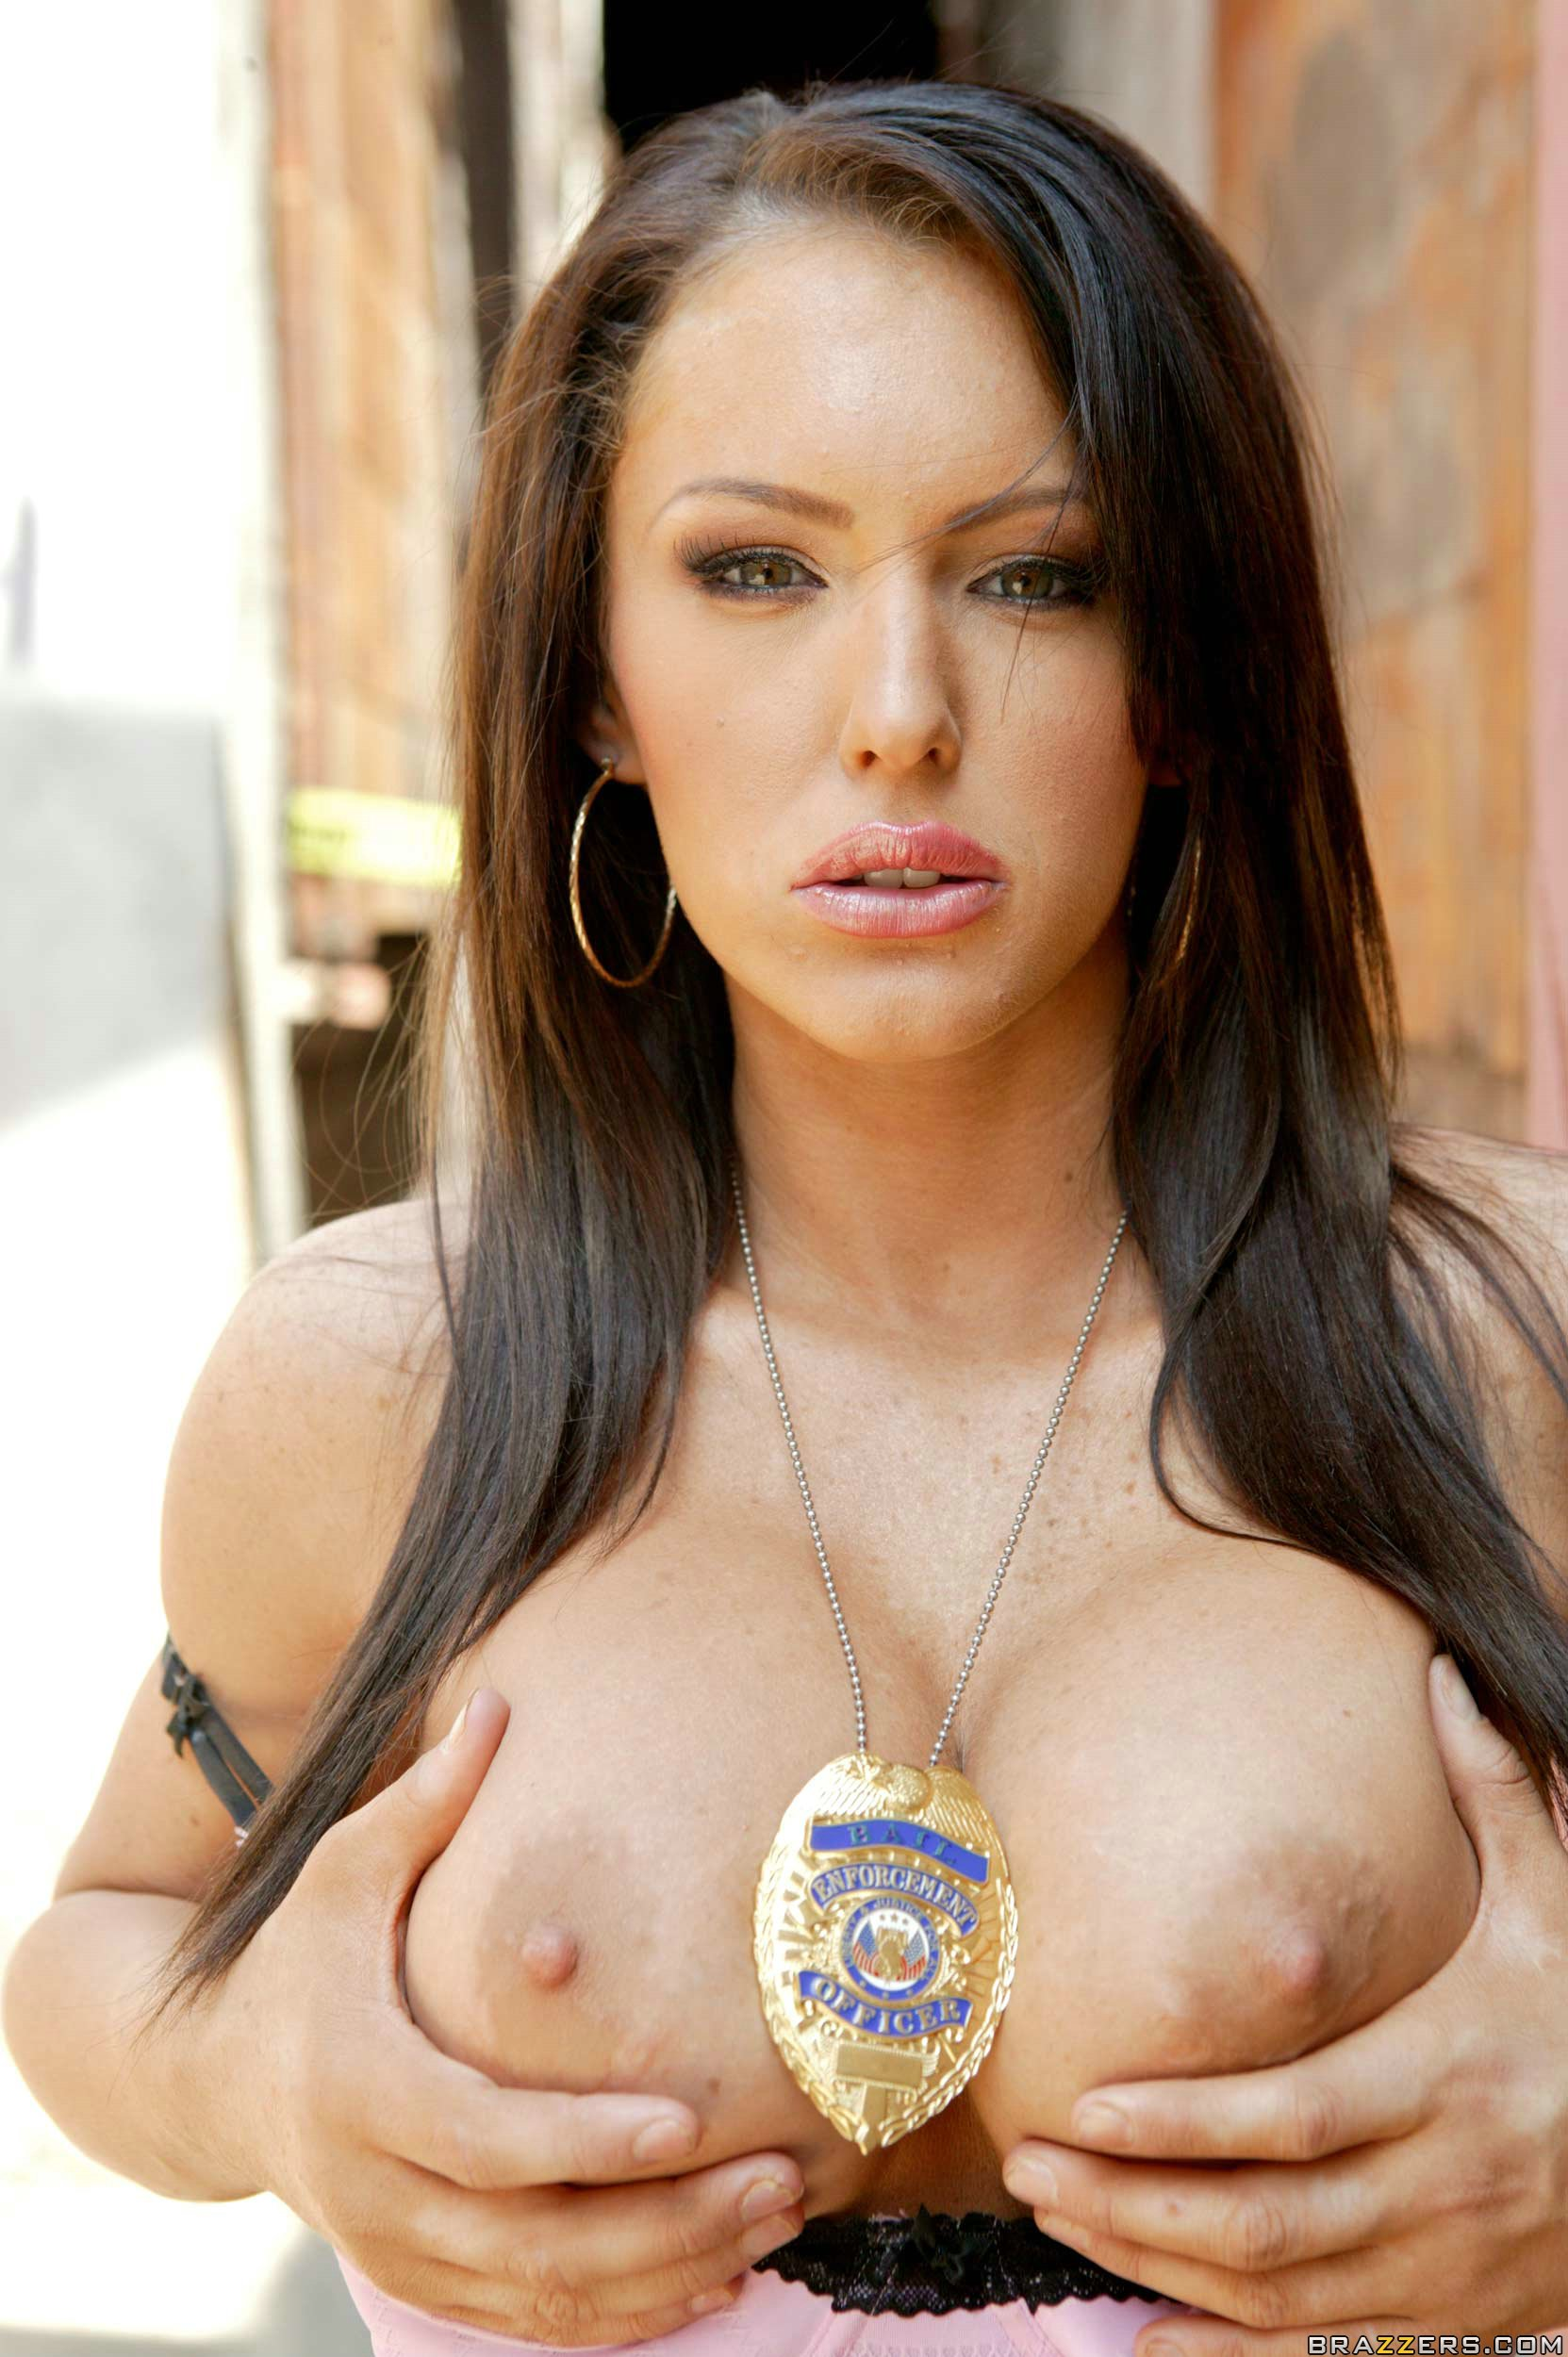 Gorgeous brunette with amazing tits when 10